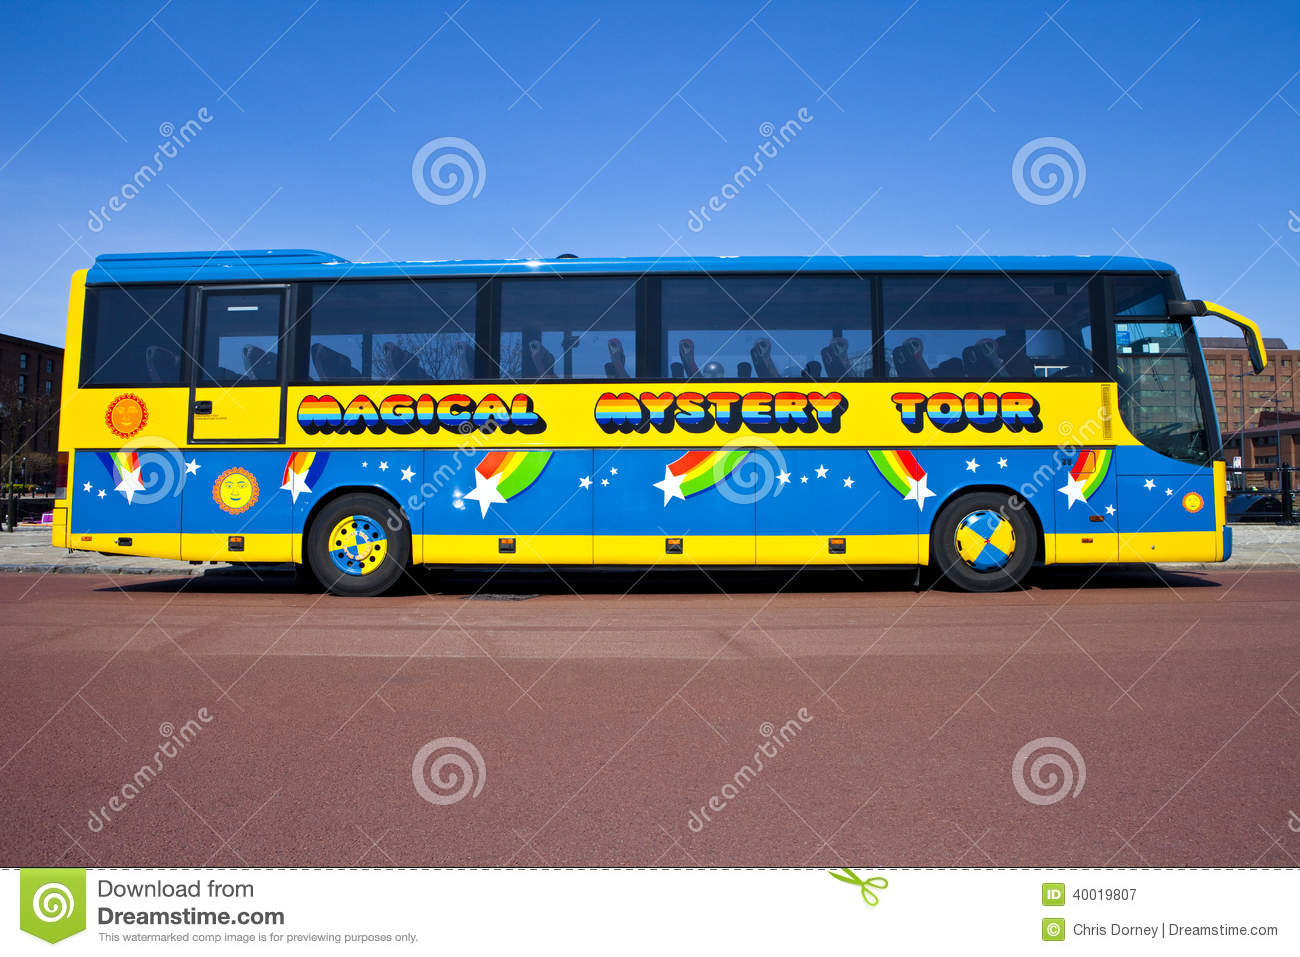 Magical Mystery Tour Bus in Liverpool